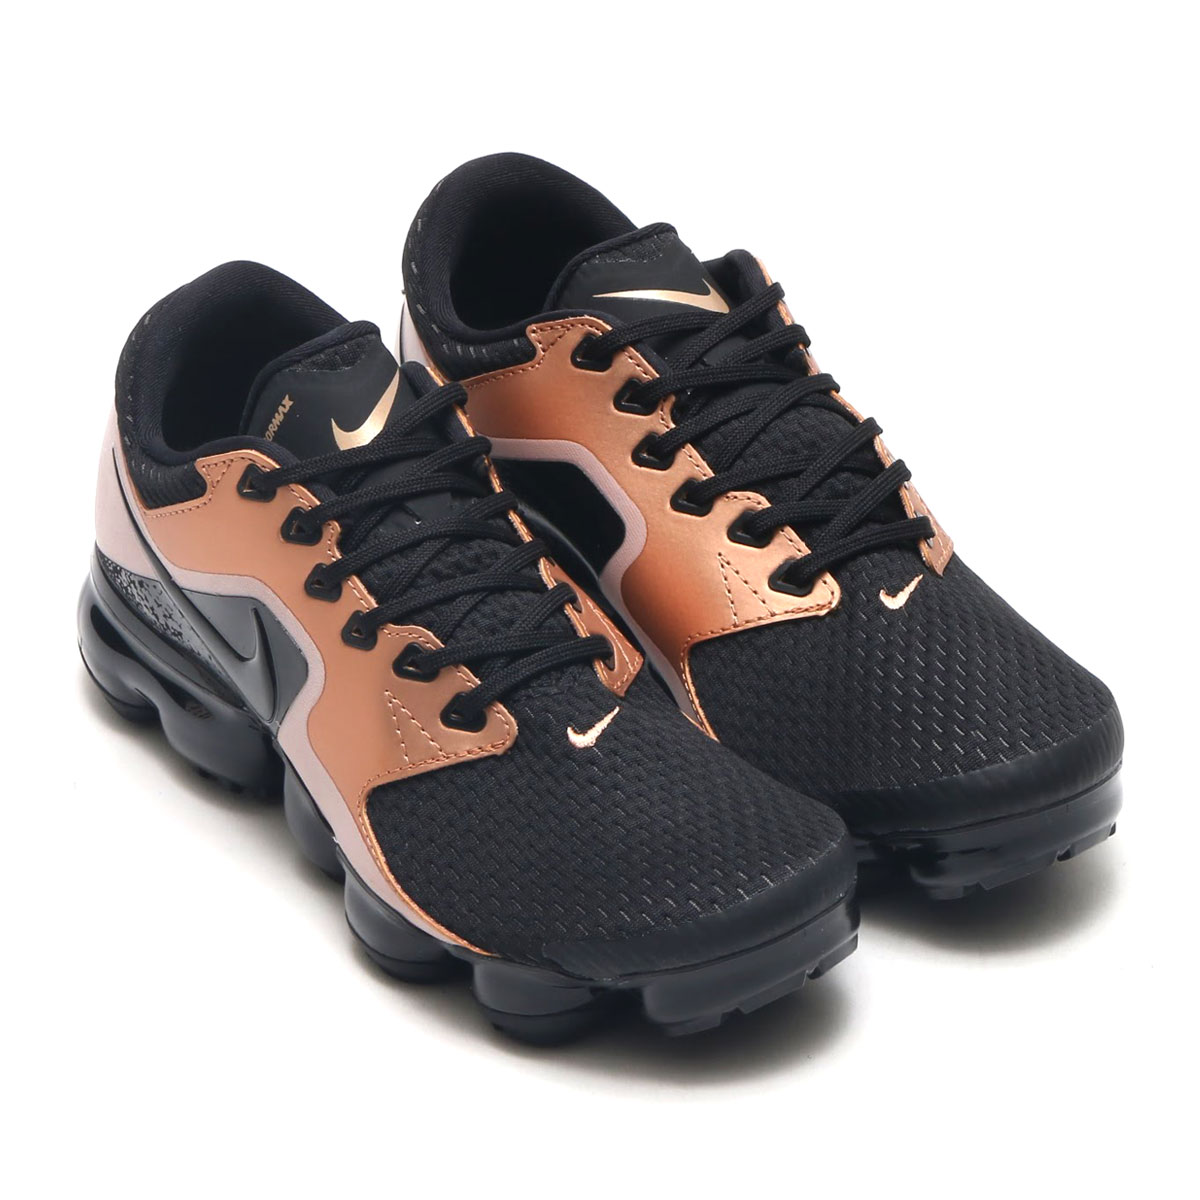 NIKE WMNS AIR VAPORMAX(ナイキ ウィメンズ エア ベイパーマックス)(BLACK/BLACK-BLACK-MTLC RED BRONZE)17HO-S